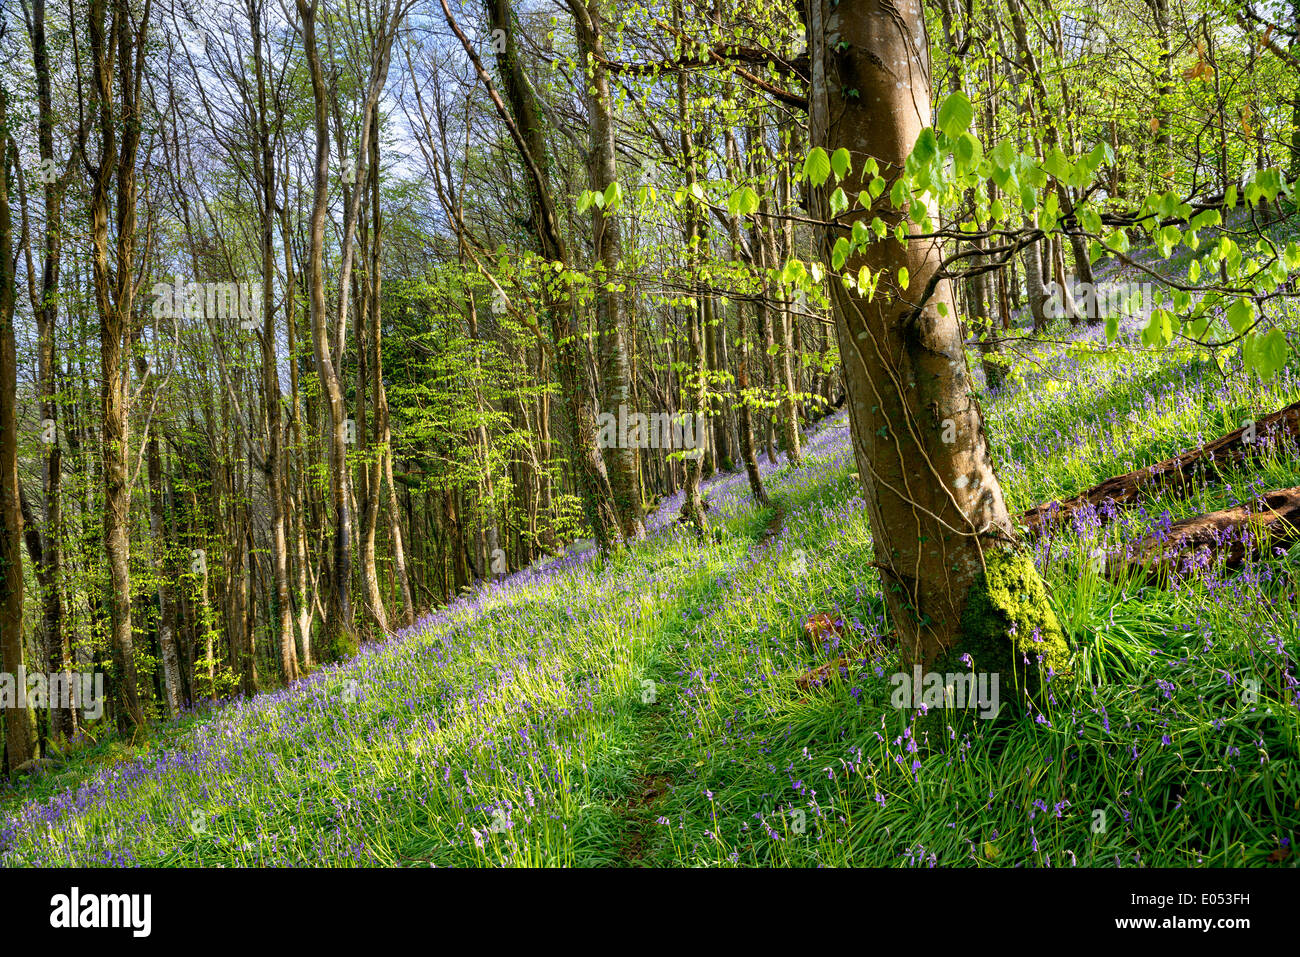 Native Bluebells growing on a steep wooded hillside in Cornwall - Stock Image